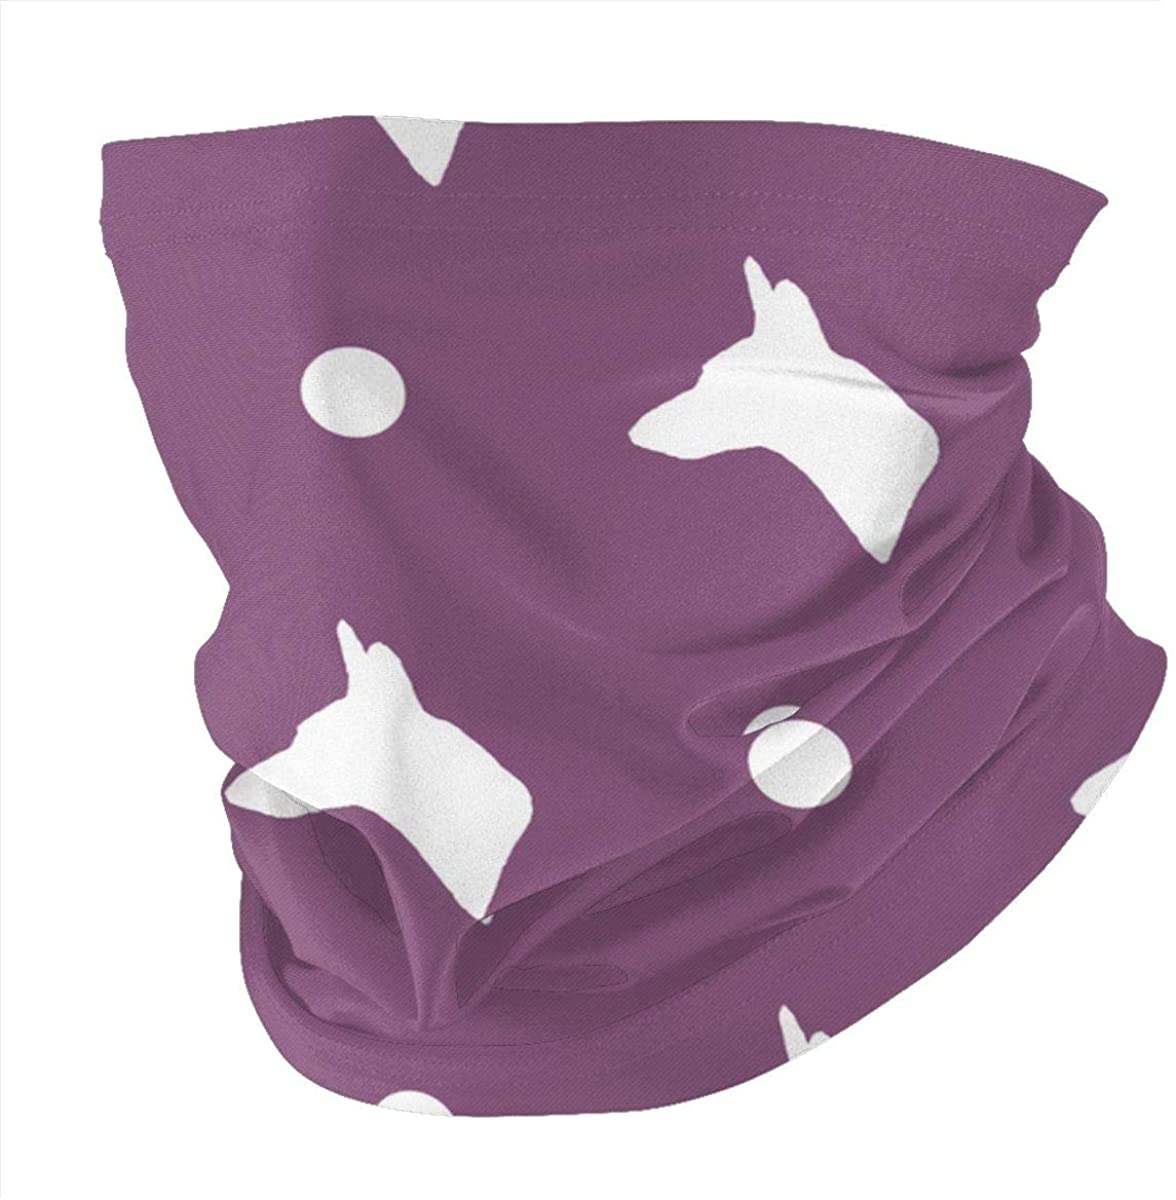 Carolina Dog Silhouette And Polka Dots In Purple PlumVariety Head Scarf Korn Scarves, face Towels, veils, Masks, Wristbands, Hair Bands, Pirate Hats, Riding Masks